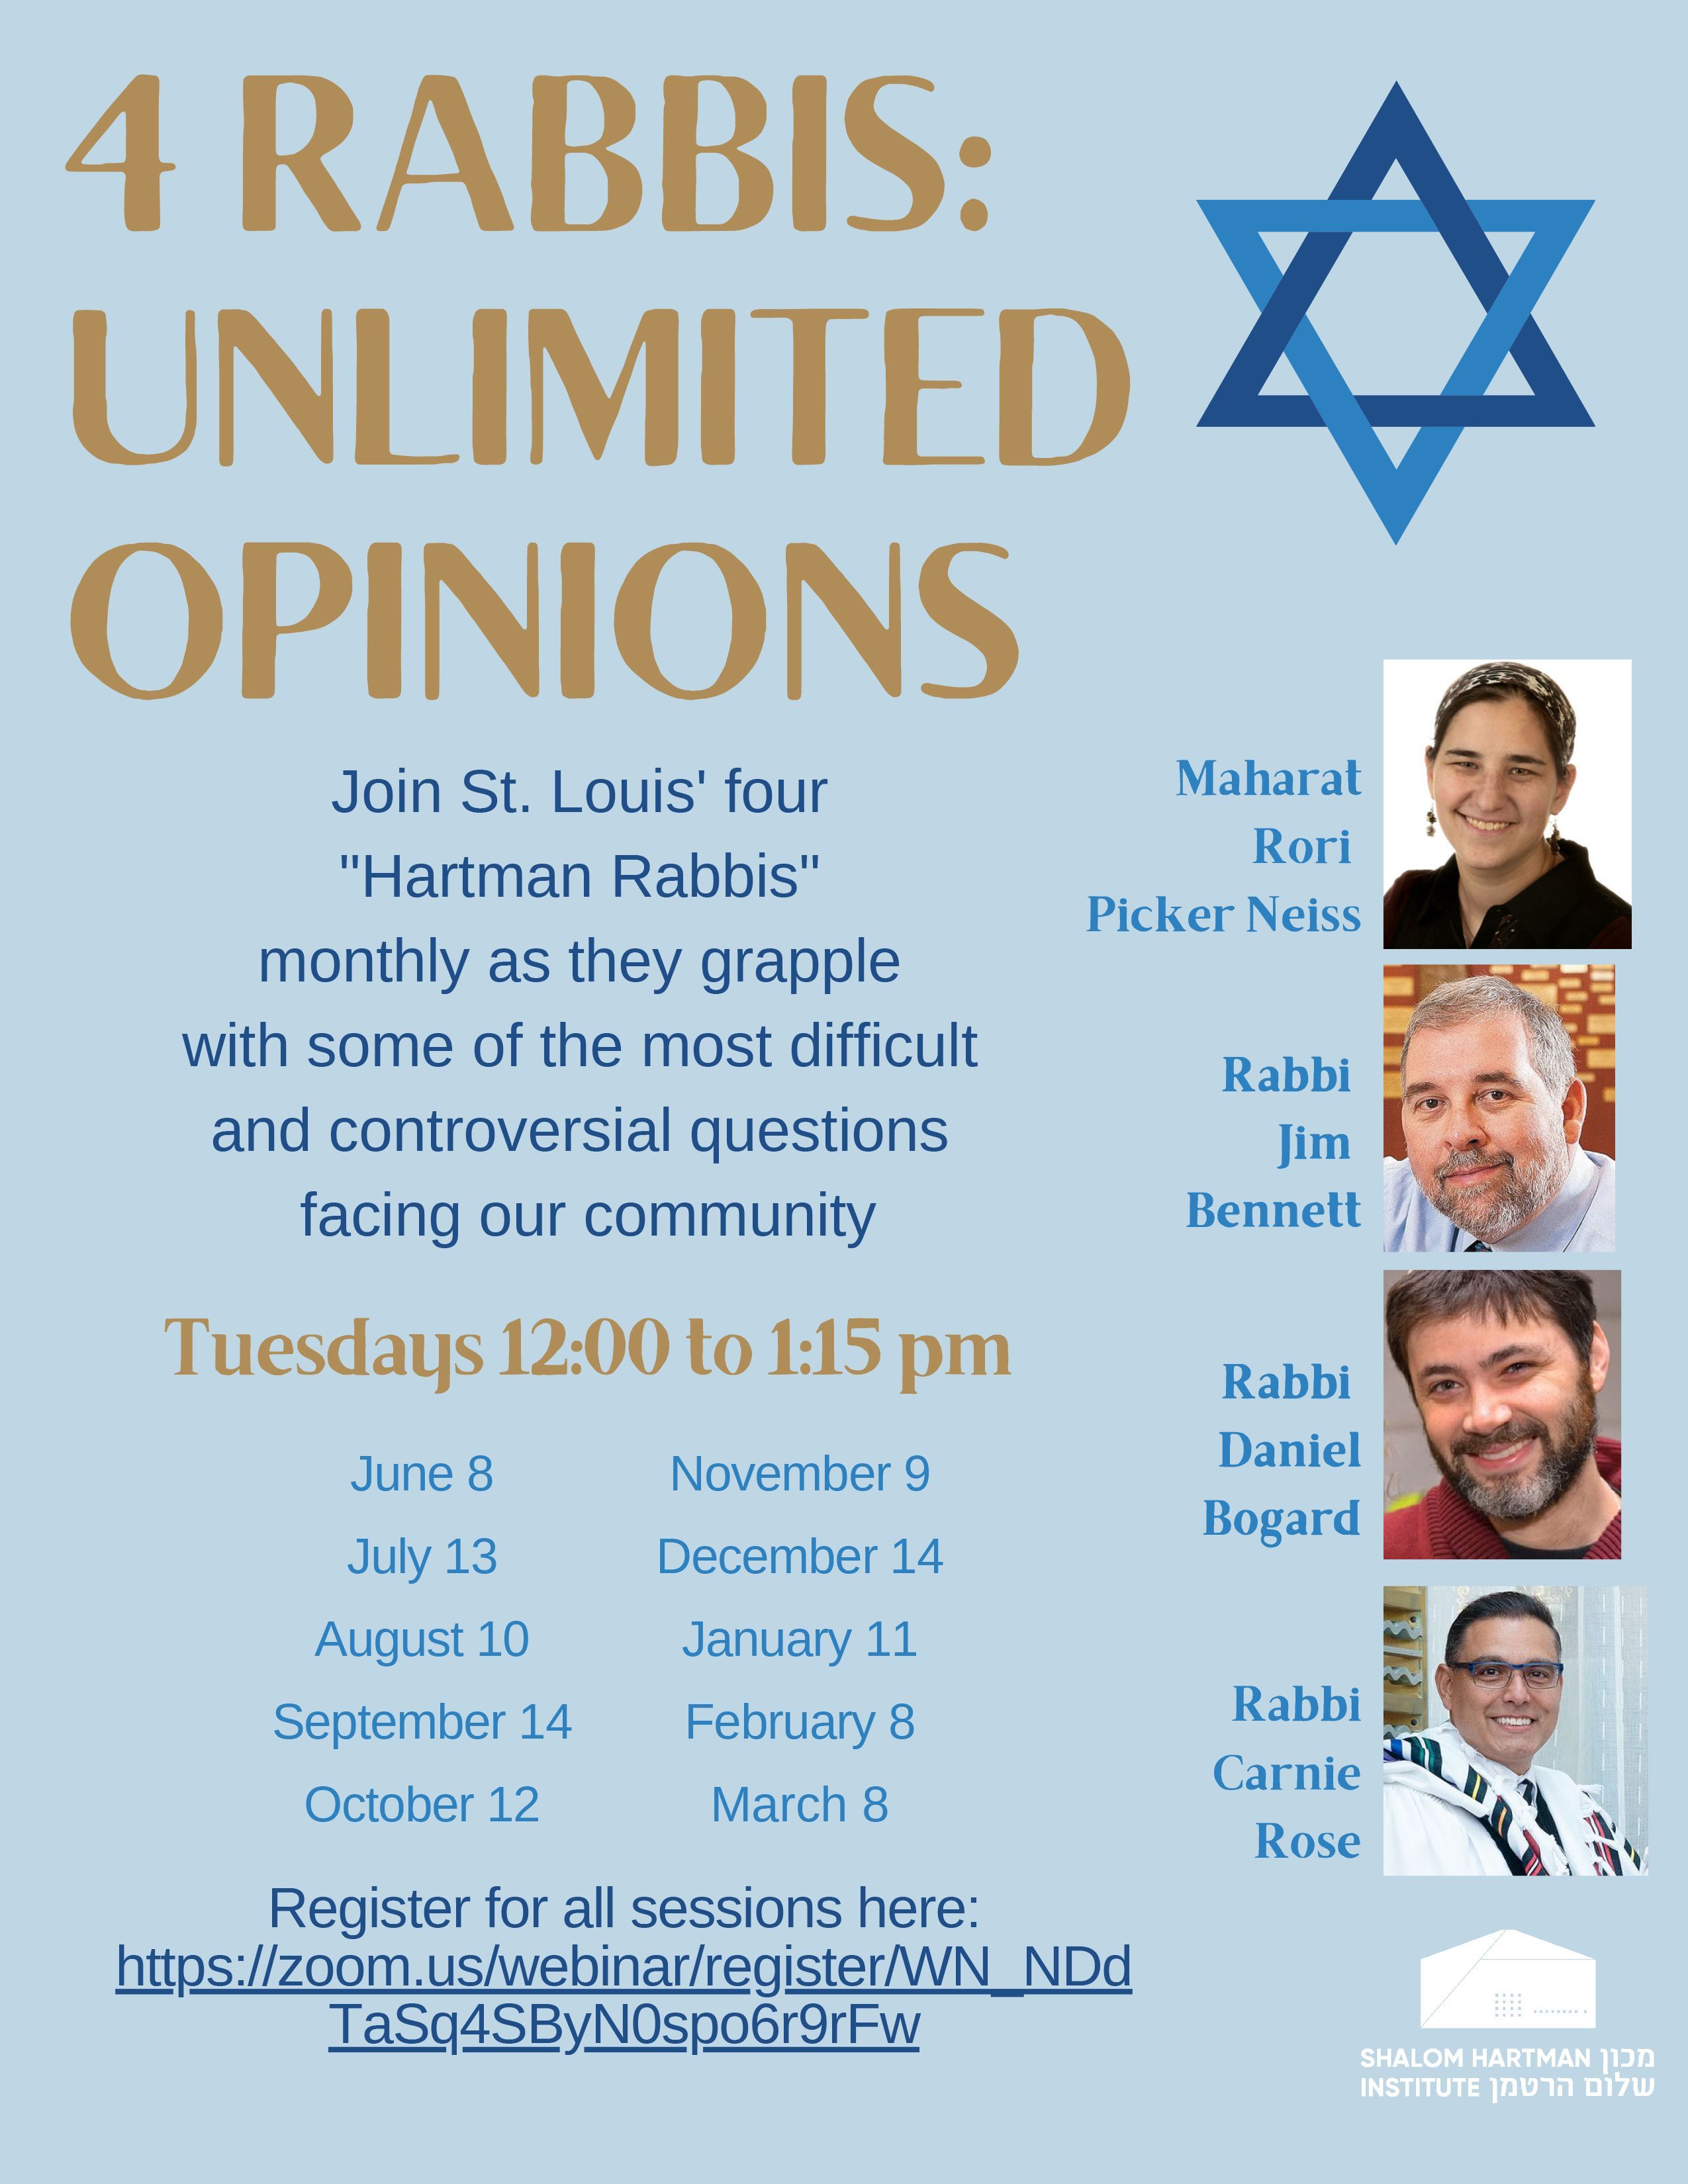 Four Rabbis Unlimited Opinions Flyer